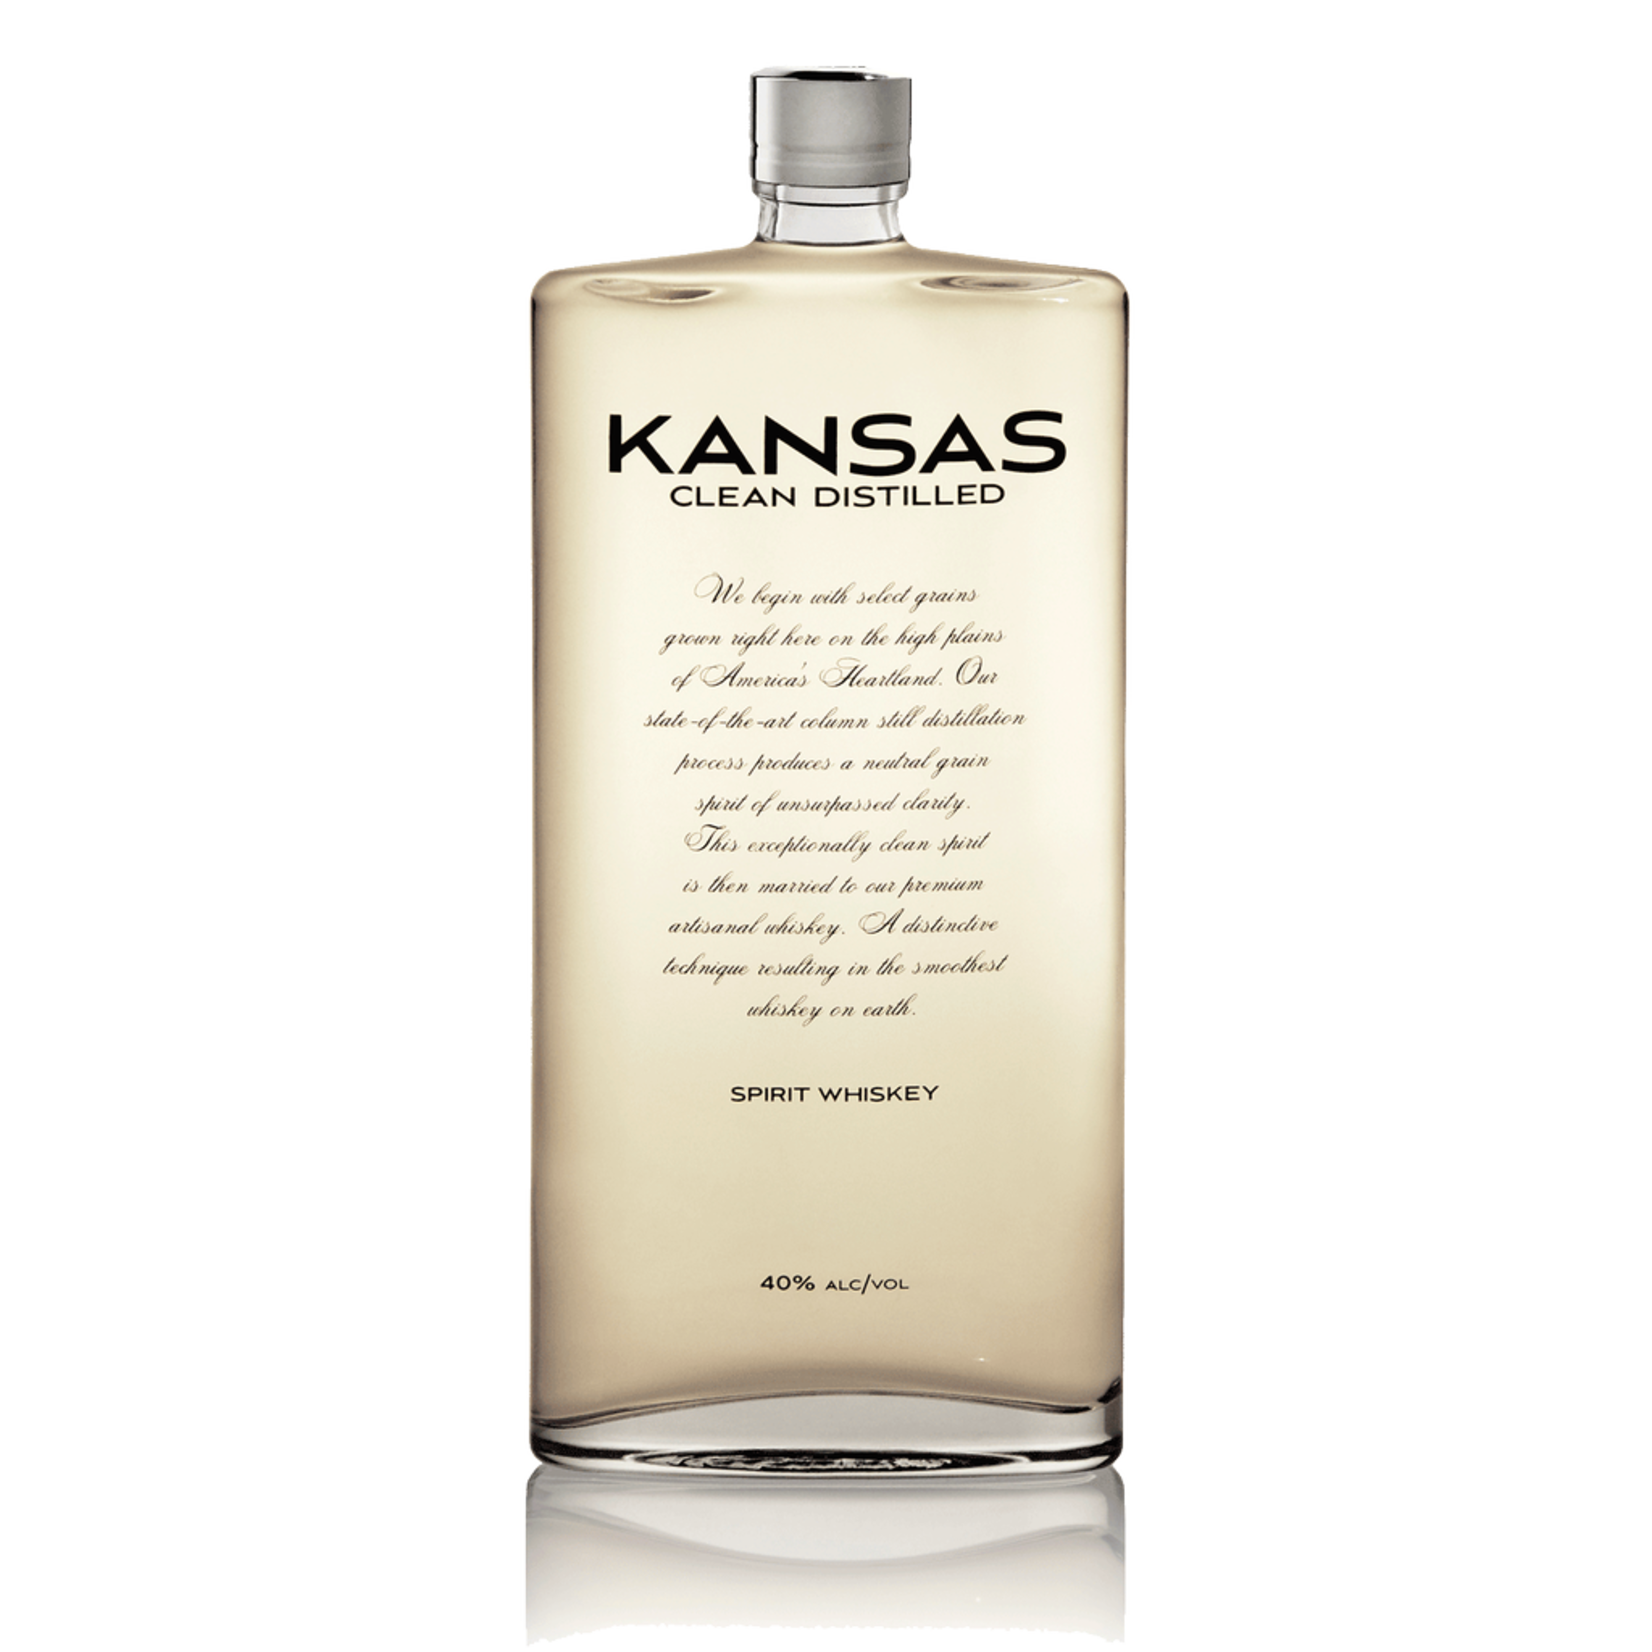 Kansas Clean Distilled Spirit Whiskey